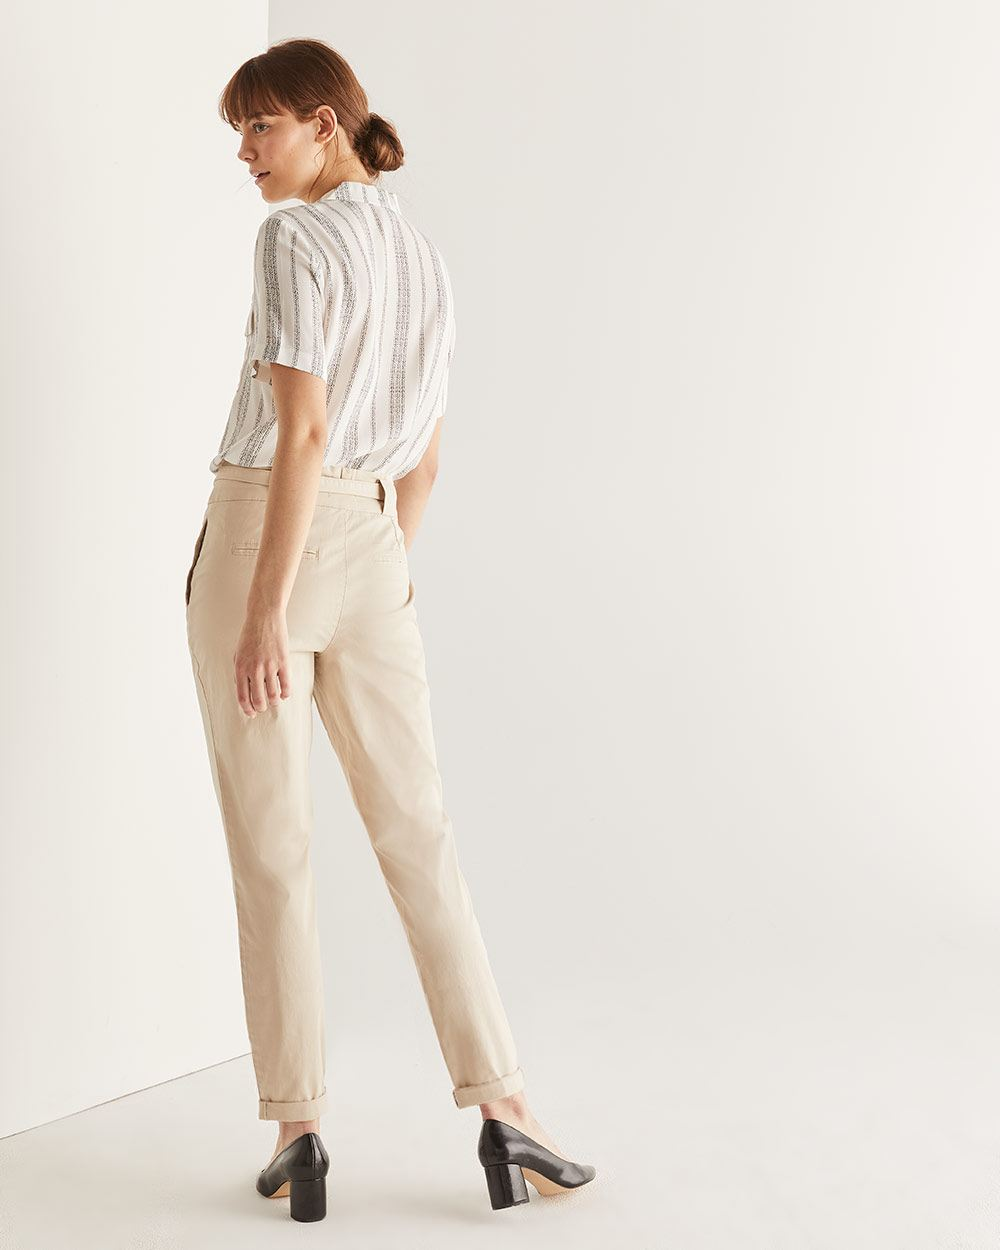 Belted Chino Pant - Tall